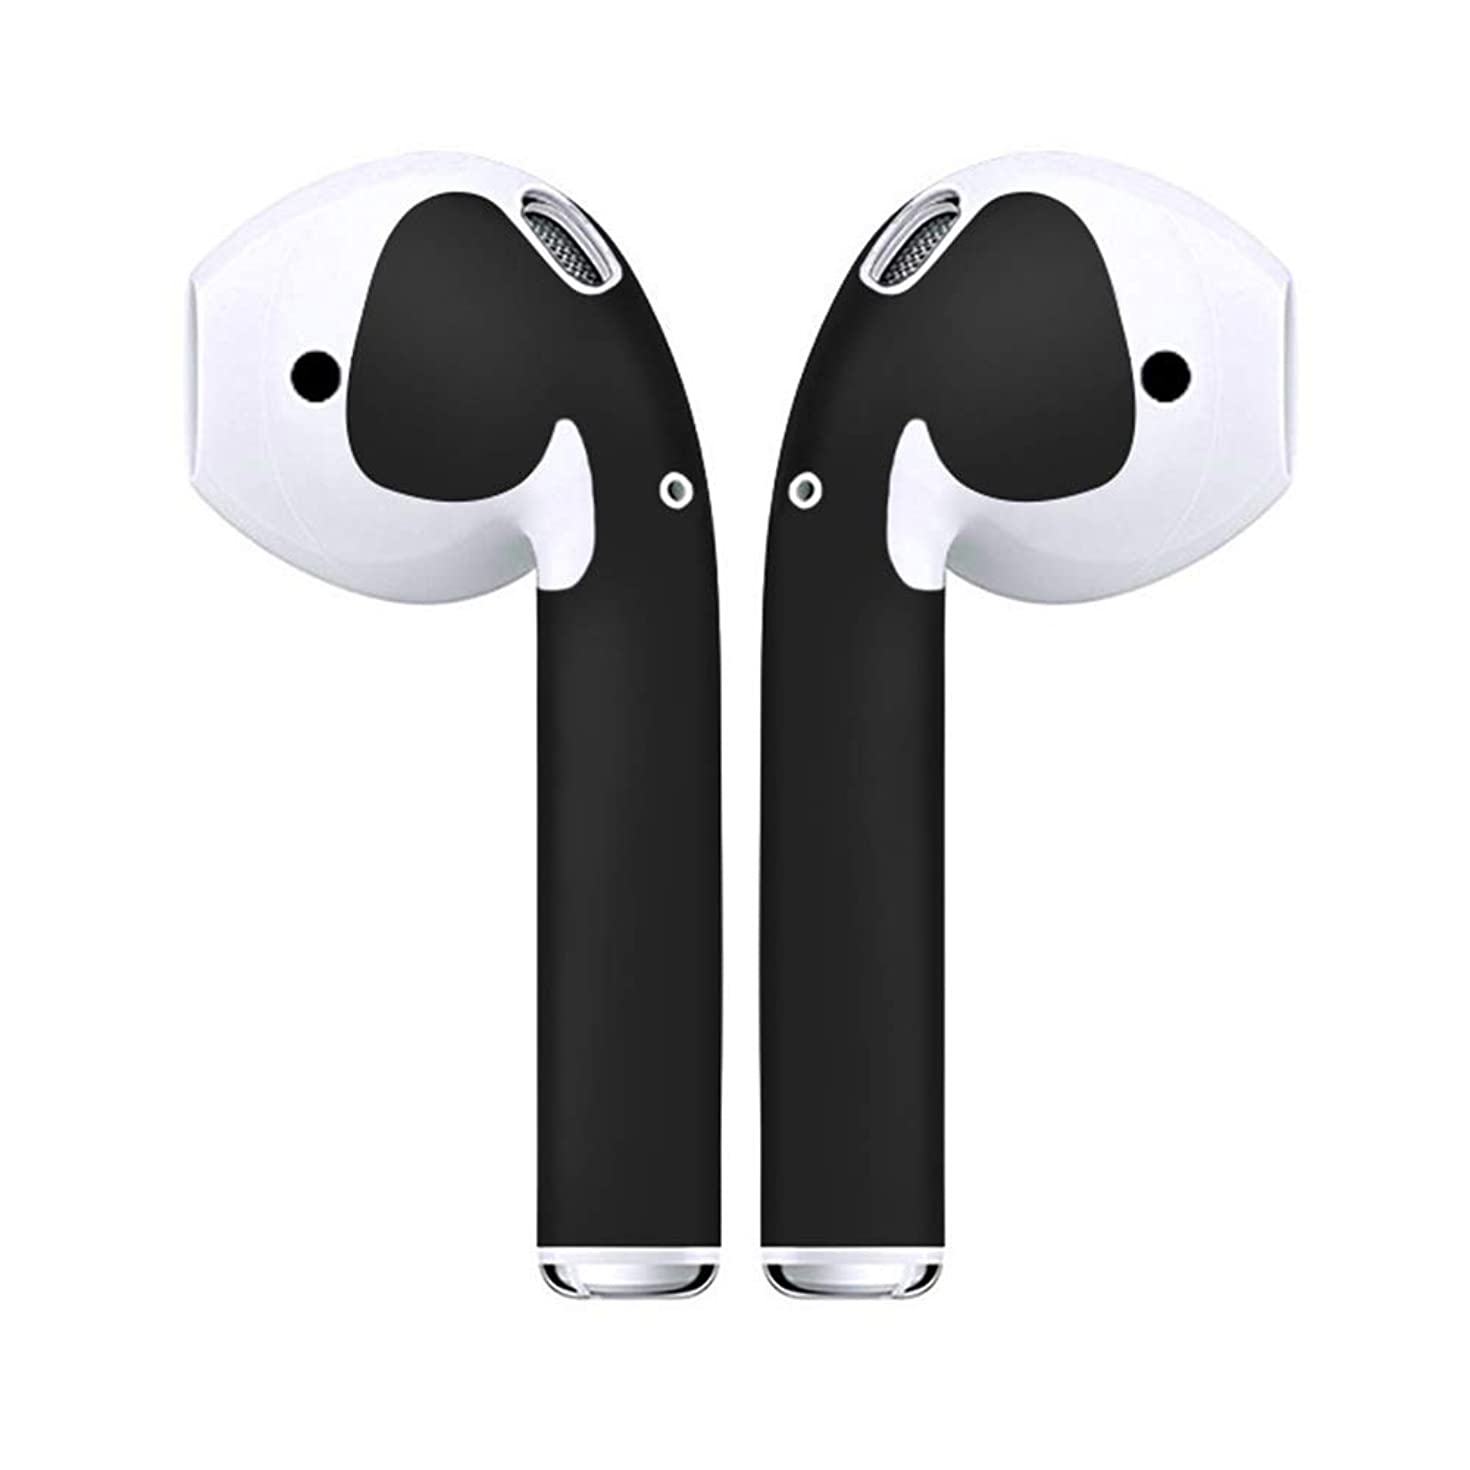 Airpod Skins Protective Wraps,Minimal Stylish Covers for Customization & Protection, Skin Sticker Compatible with Apple Airpods or 1 & 2 (Matte Black)